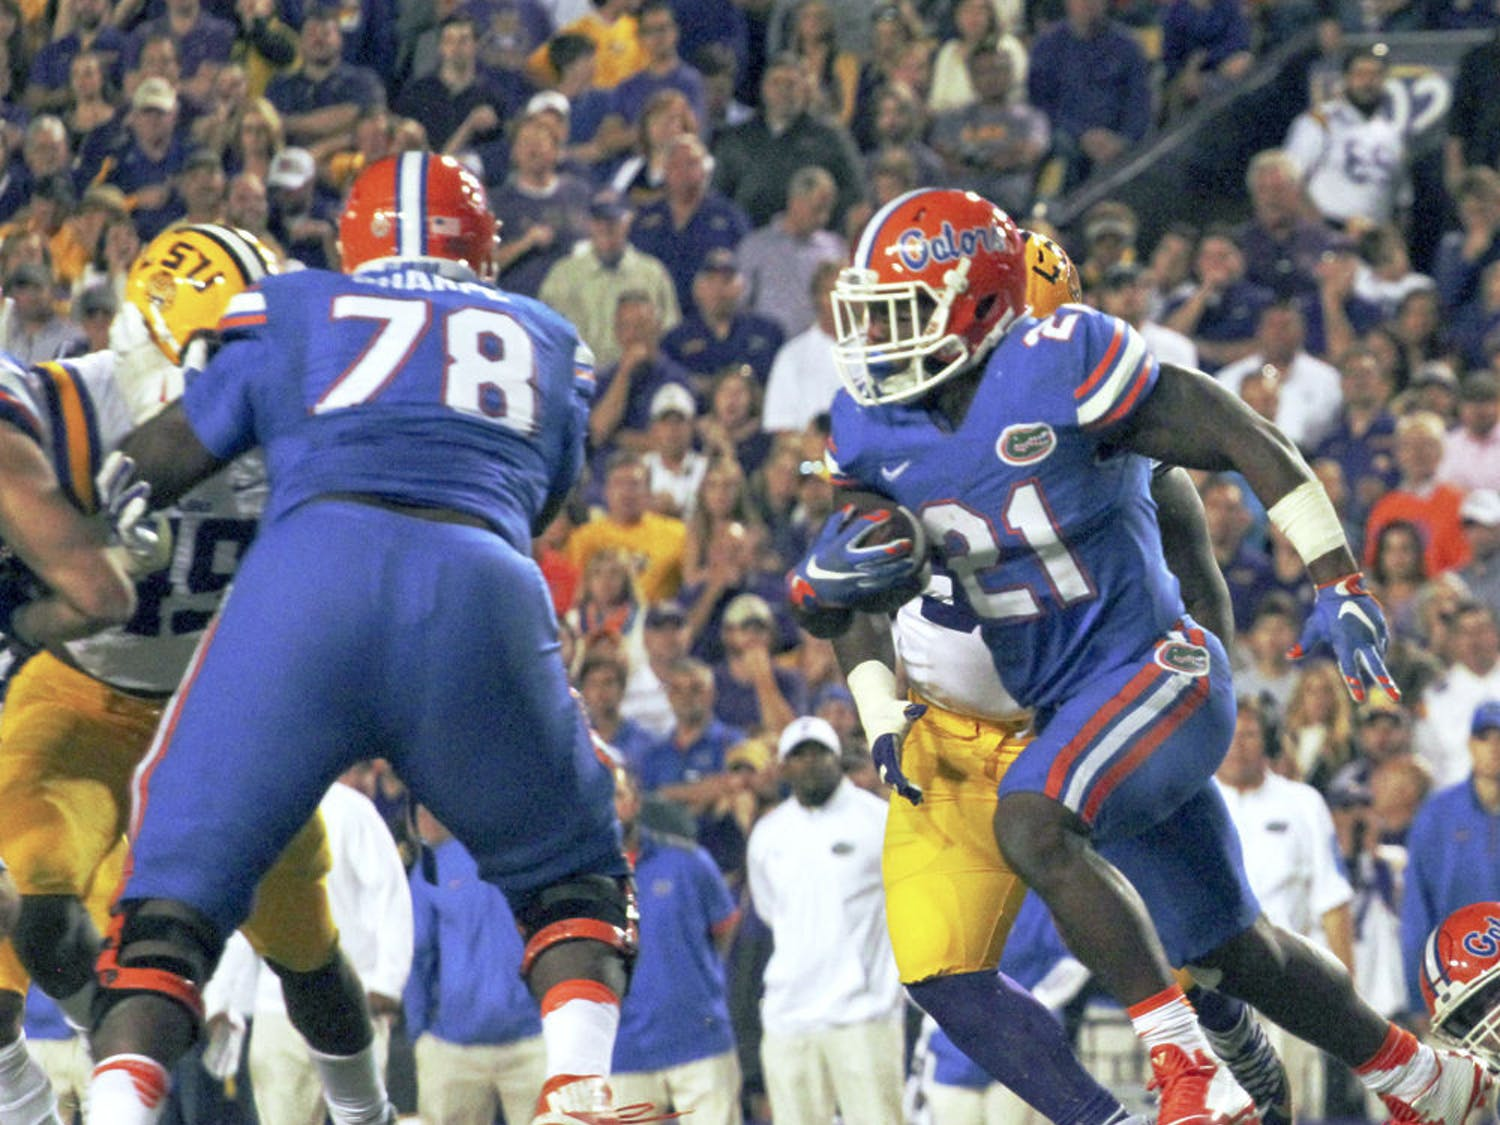 UF running back Kelvin Taylor carries the ball on Oct. 17, 2015, against LSU.